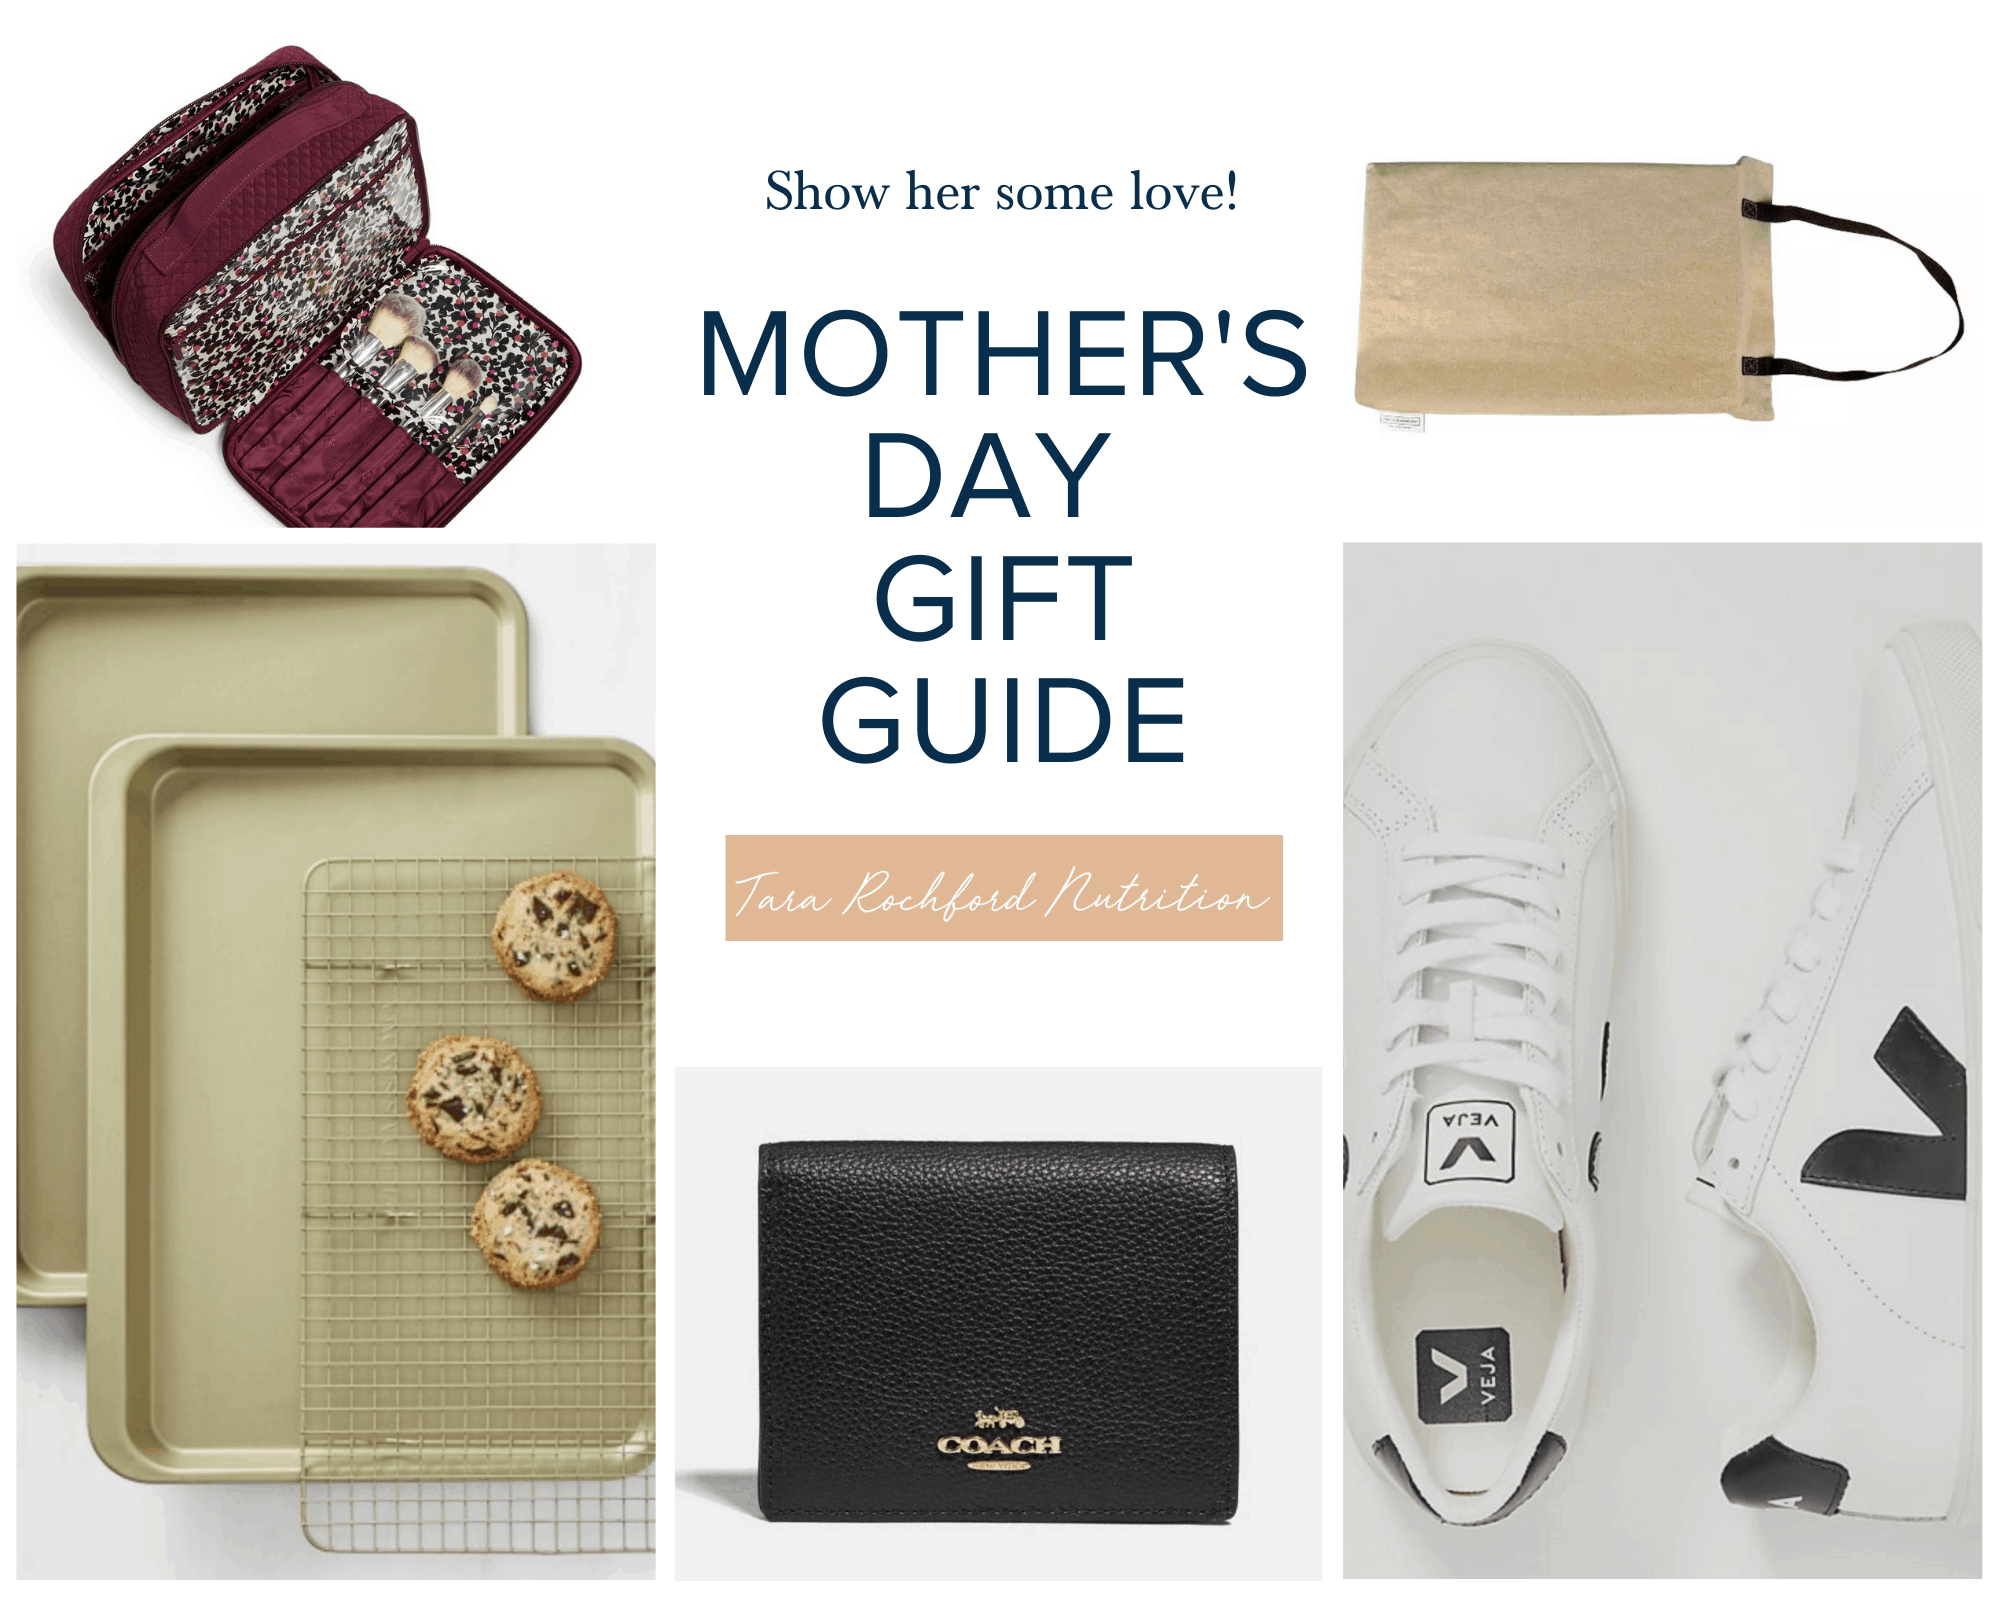 Mother's Day Gift Guide #mothersday #tararochfordnutrition